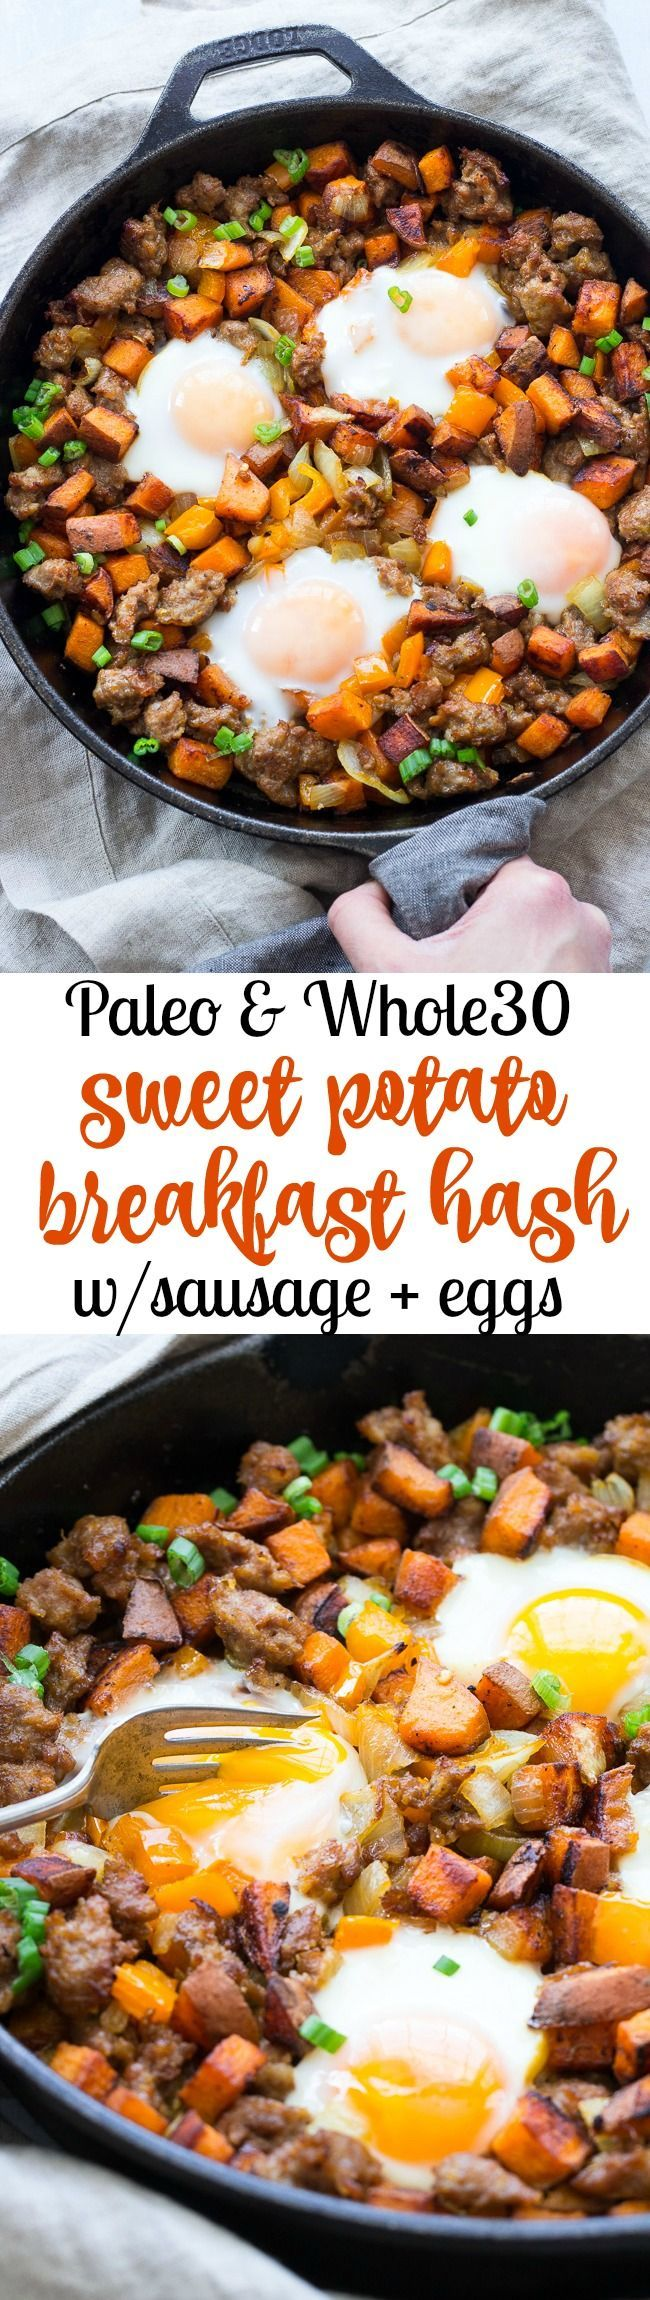 This skillet sweet potato hash with sausage and eggs is a filling, savory, healthy meal for any time of day.  Sweet potatoes, onions, peppers and sausage with eggs cooked right into the hash, it's Paleo and Whole30 friendly plus absolutely delicious! Come and see our new website at bakedcomfortfood.com